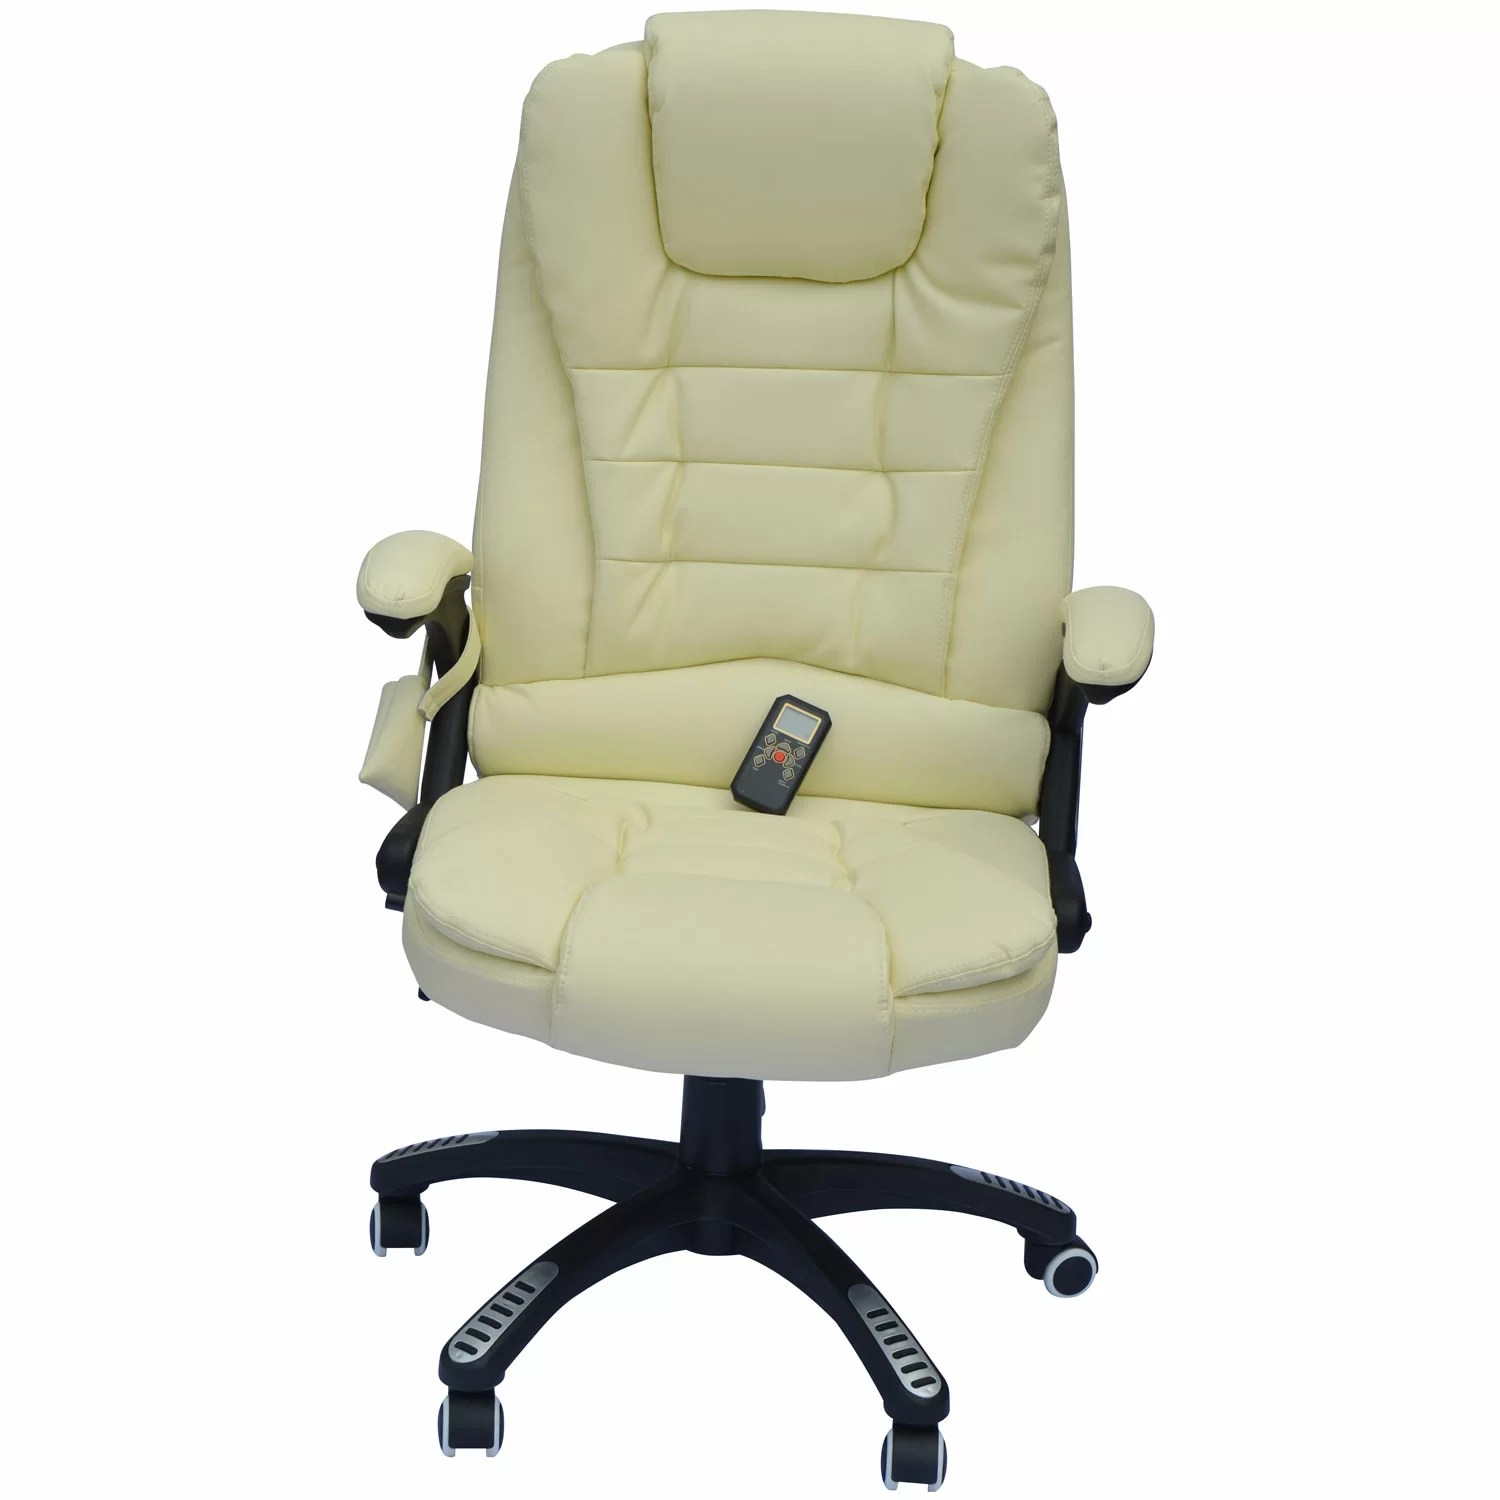 Message Chairs Homcom Homcom Faux Leather Heated Massage Chair And Reviews